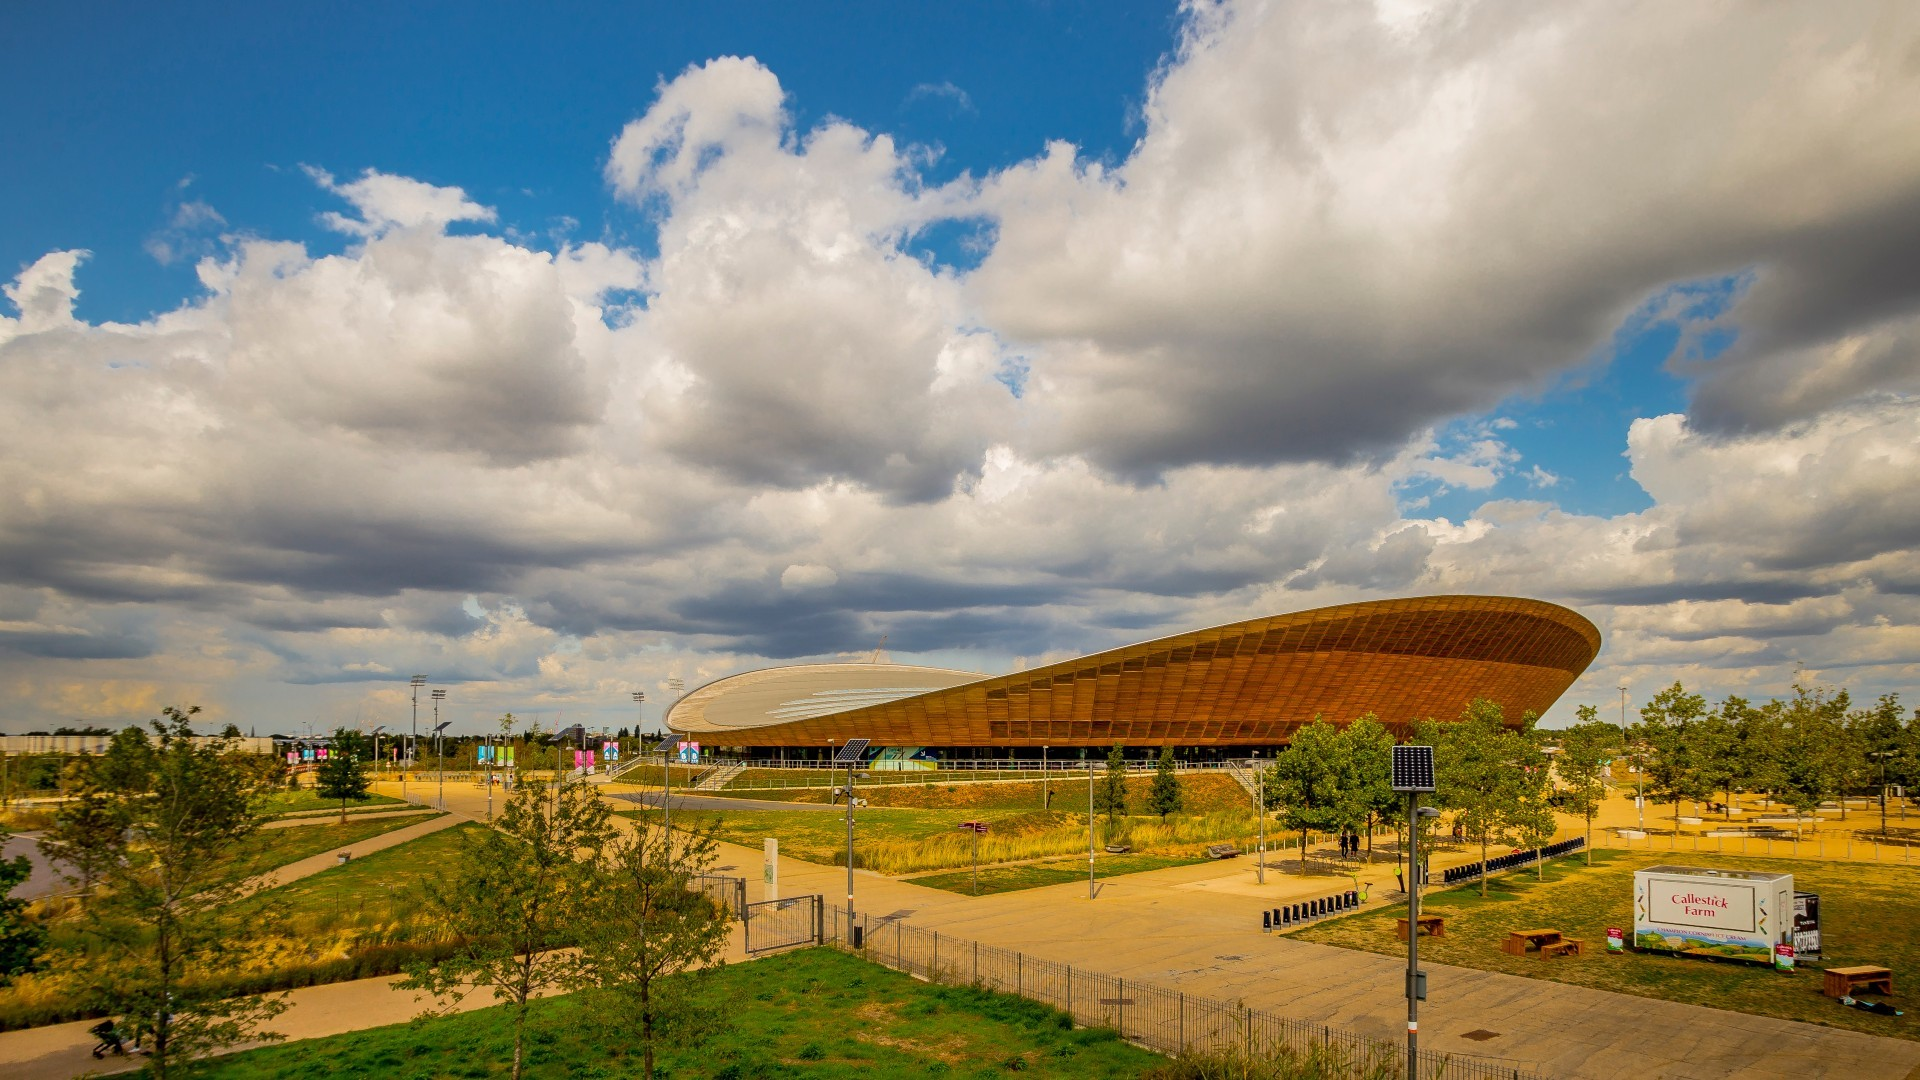 London's Olympic Park is getting a blossom memorial garden for victims of the pandemic